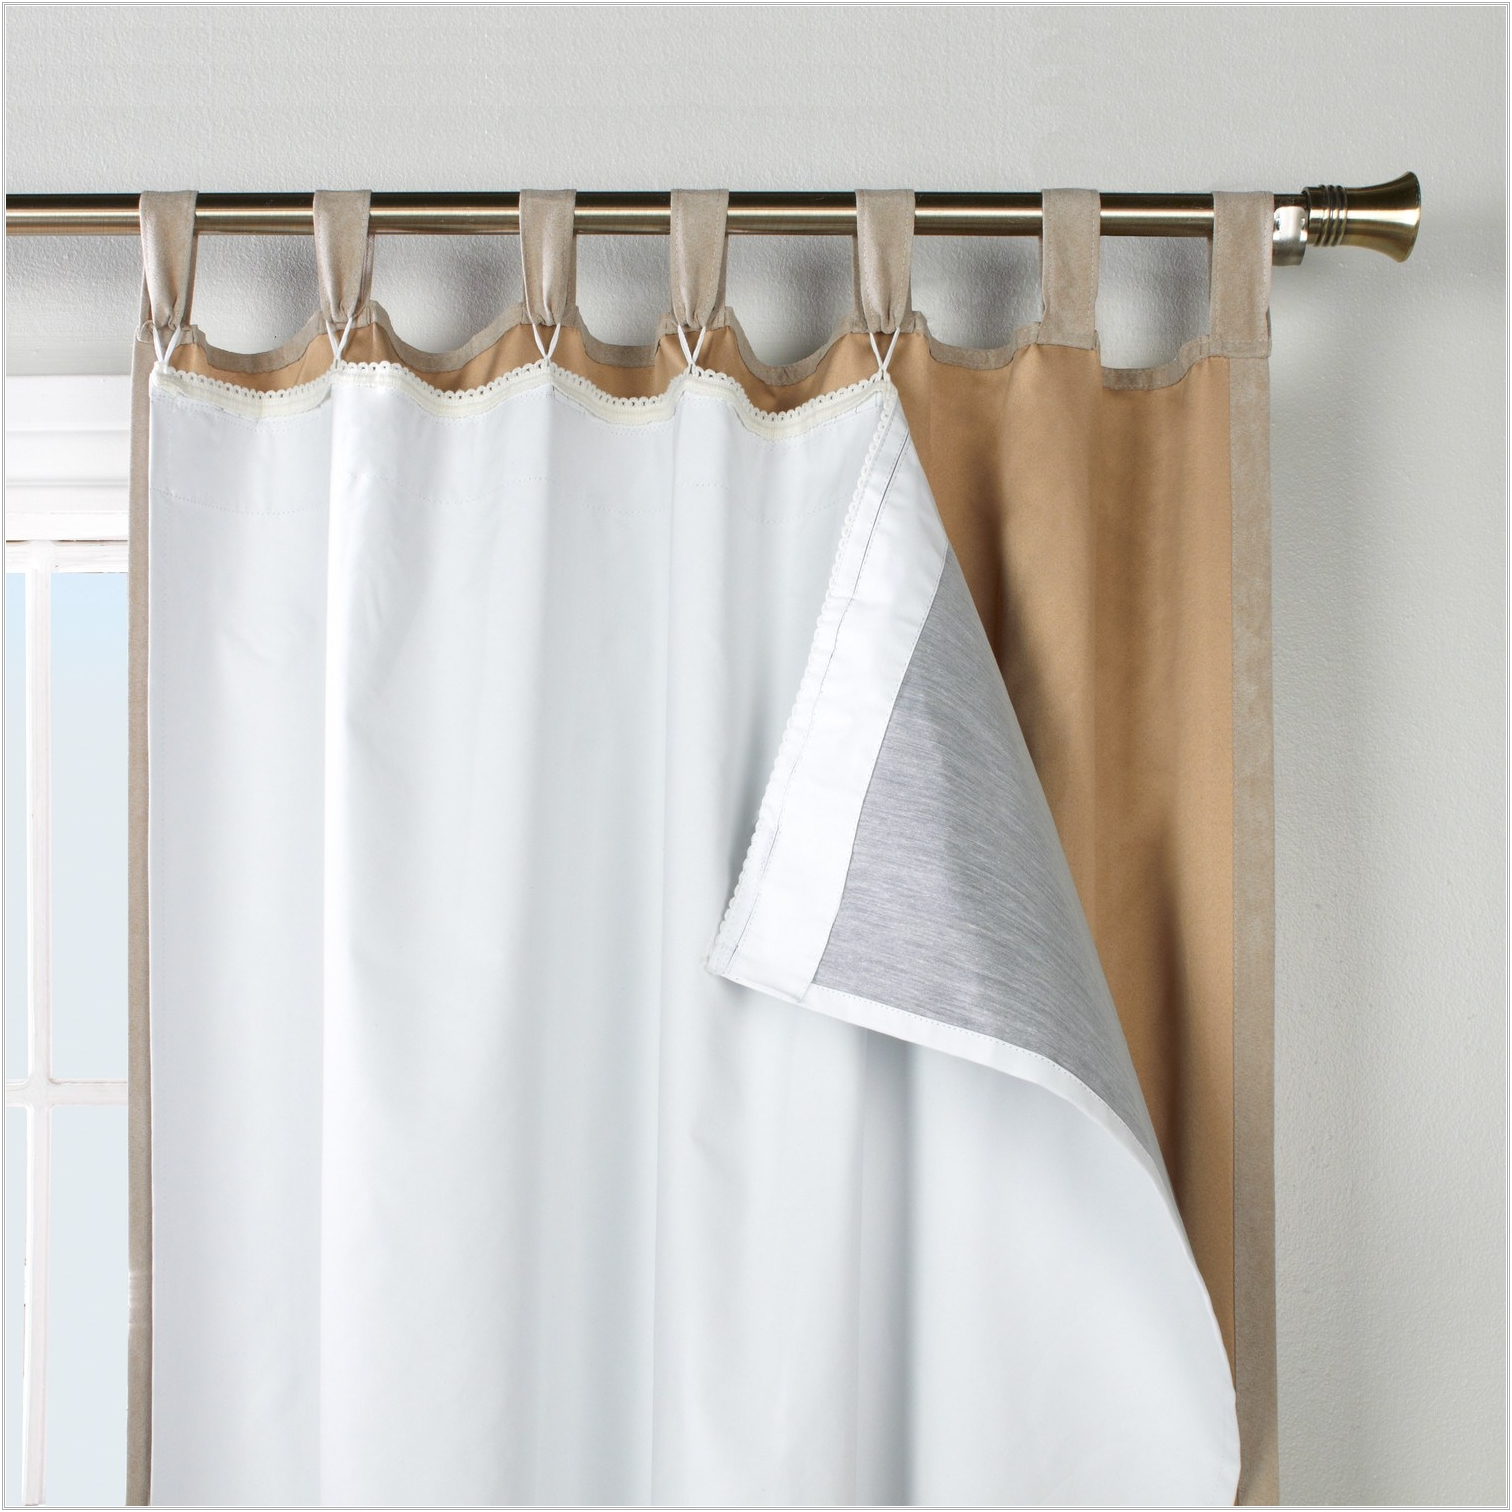 Bathroom: Shower Curtain With Liner | Shower Curtain Liner | Extra ...